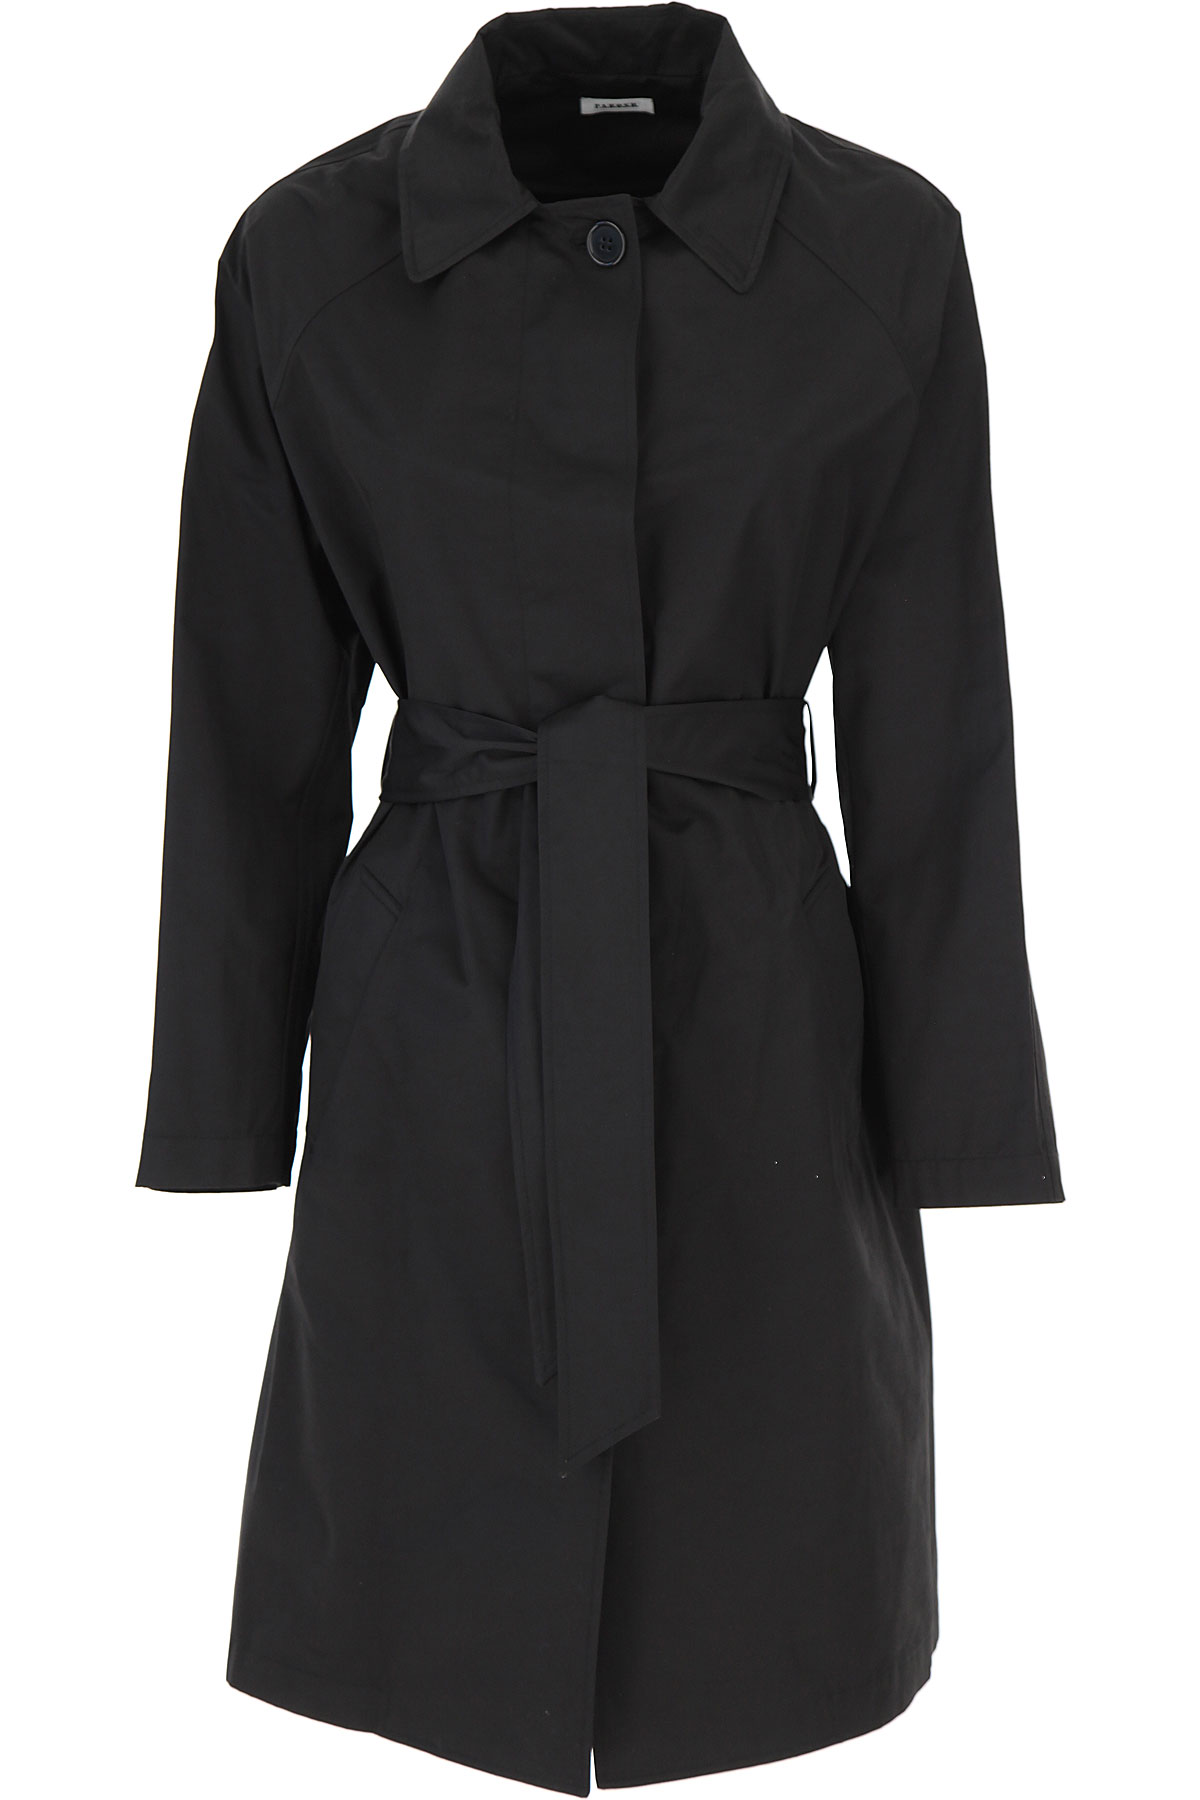 P.A.R.O.S.H. Jacket for Women On Sale, Black, Cotton, 2019, 4 6 8